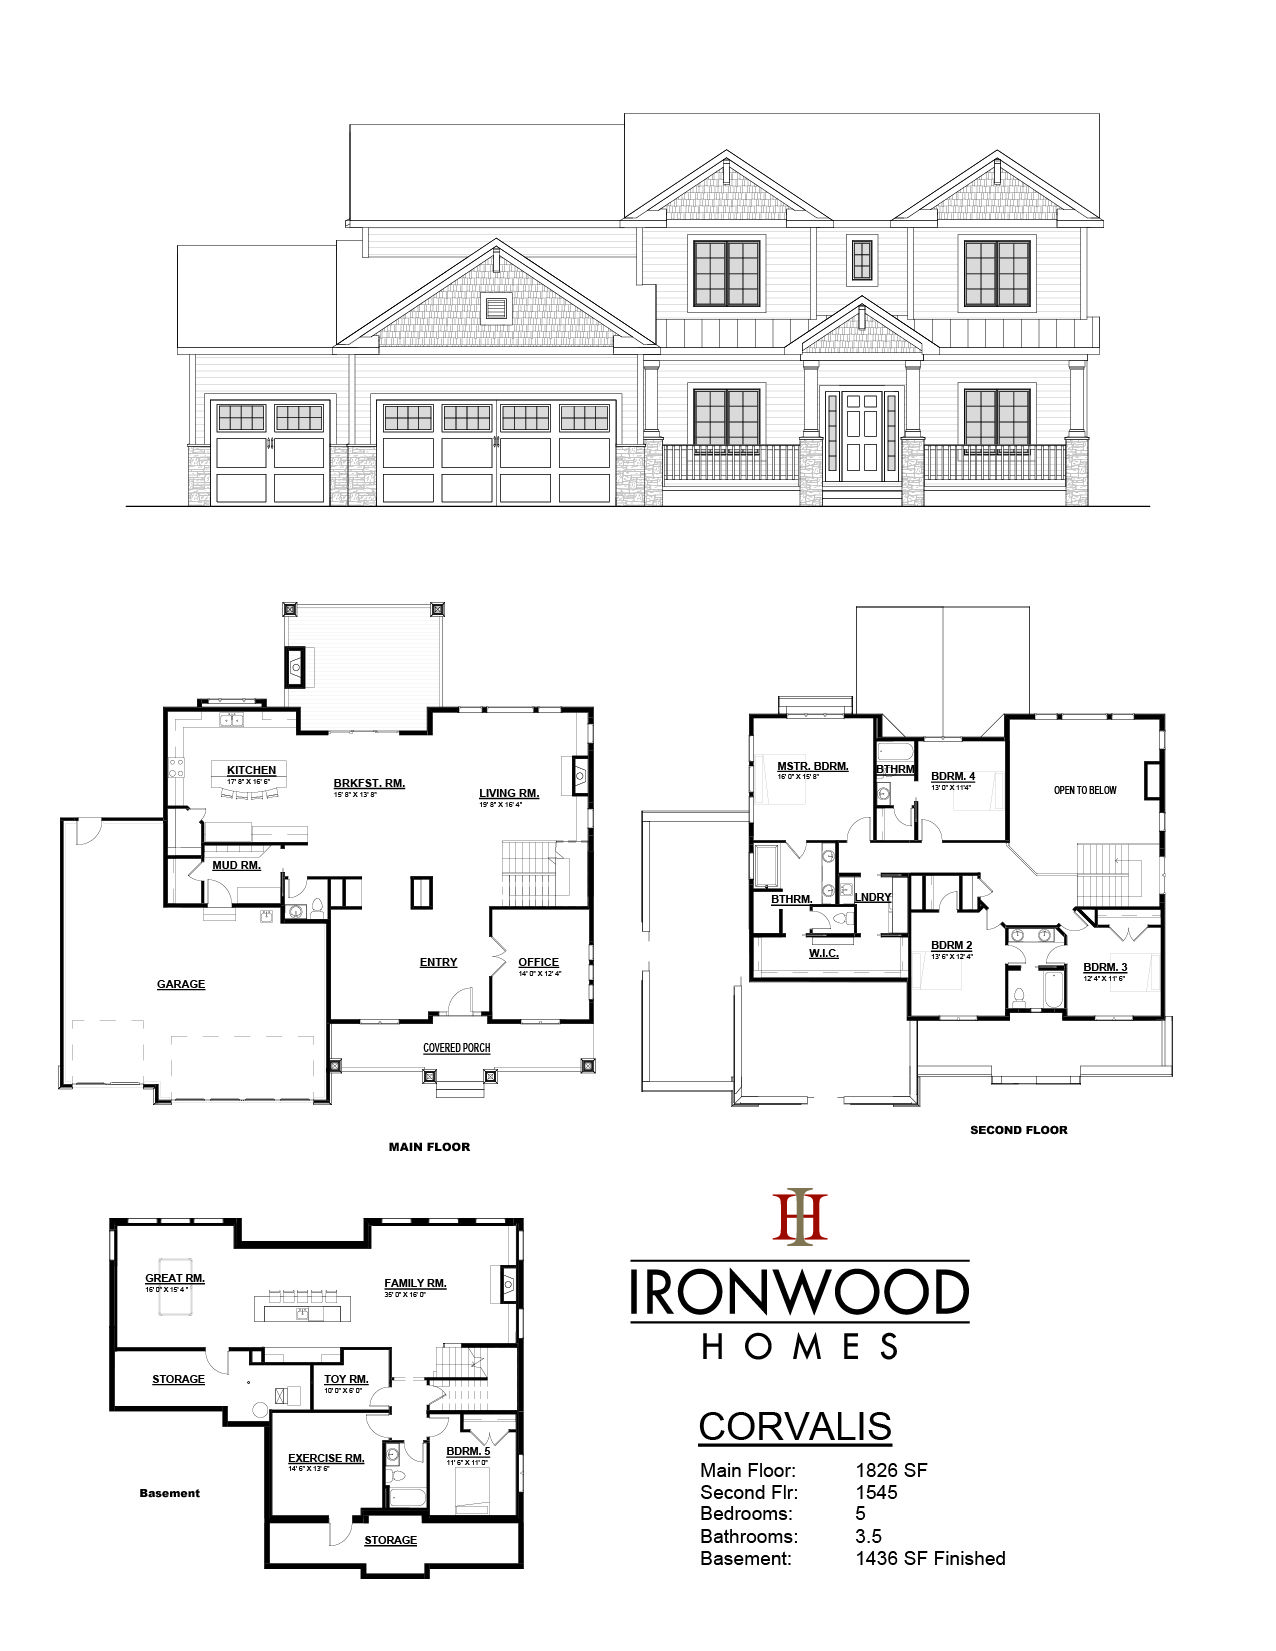 Corvalis Floor Plan Sheet House Plans Floor Plans House Blueprints